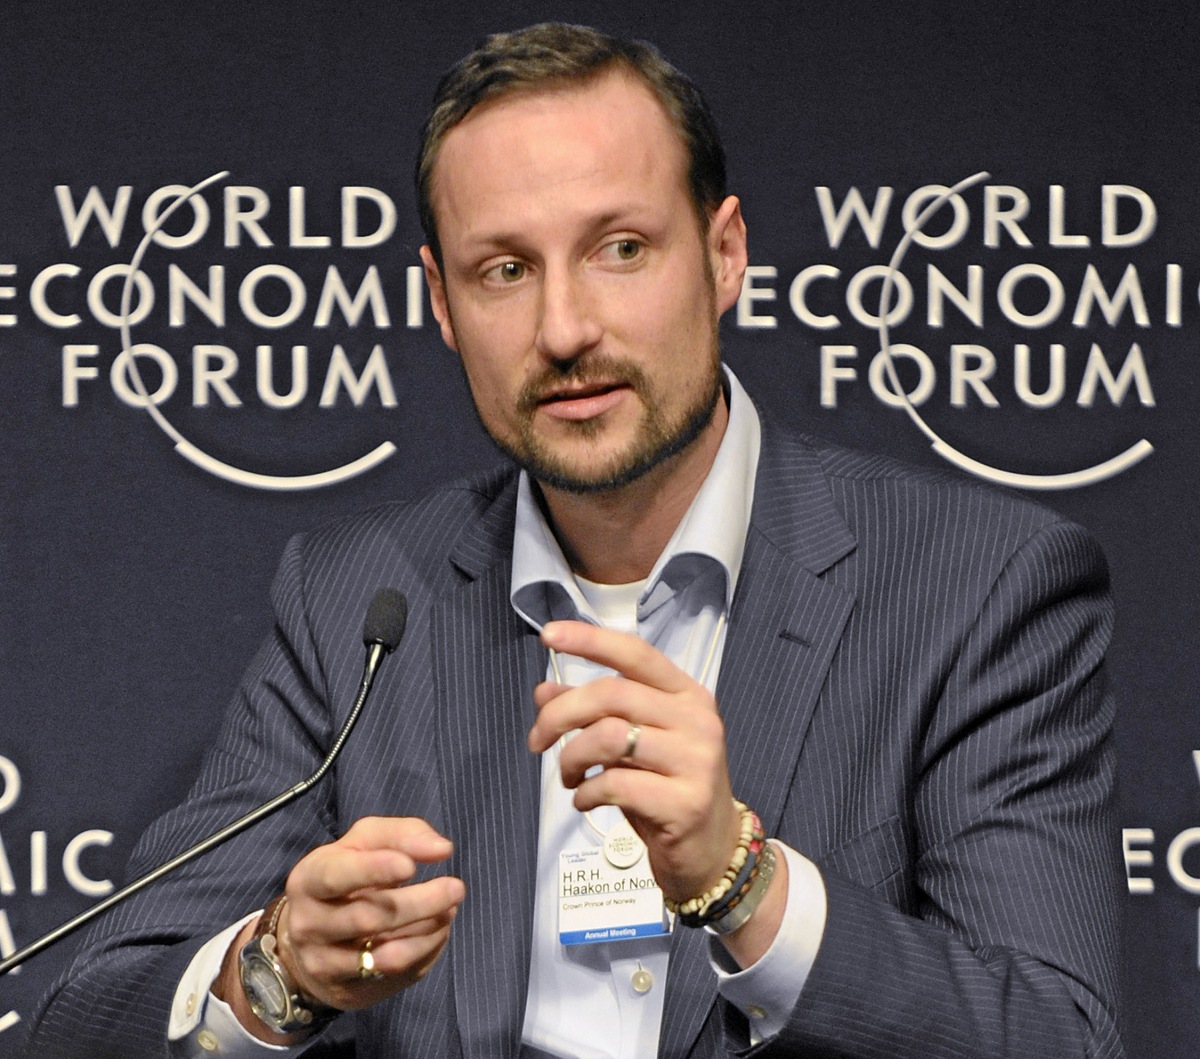 Norway Crown Prince Haakon. He was to lead a business delegation to Kenya this week starting today but has postponed the visit. www.businesstoday.co.ke